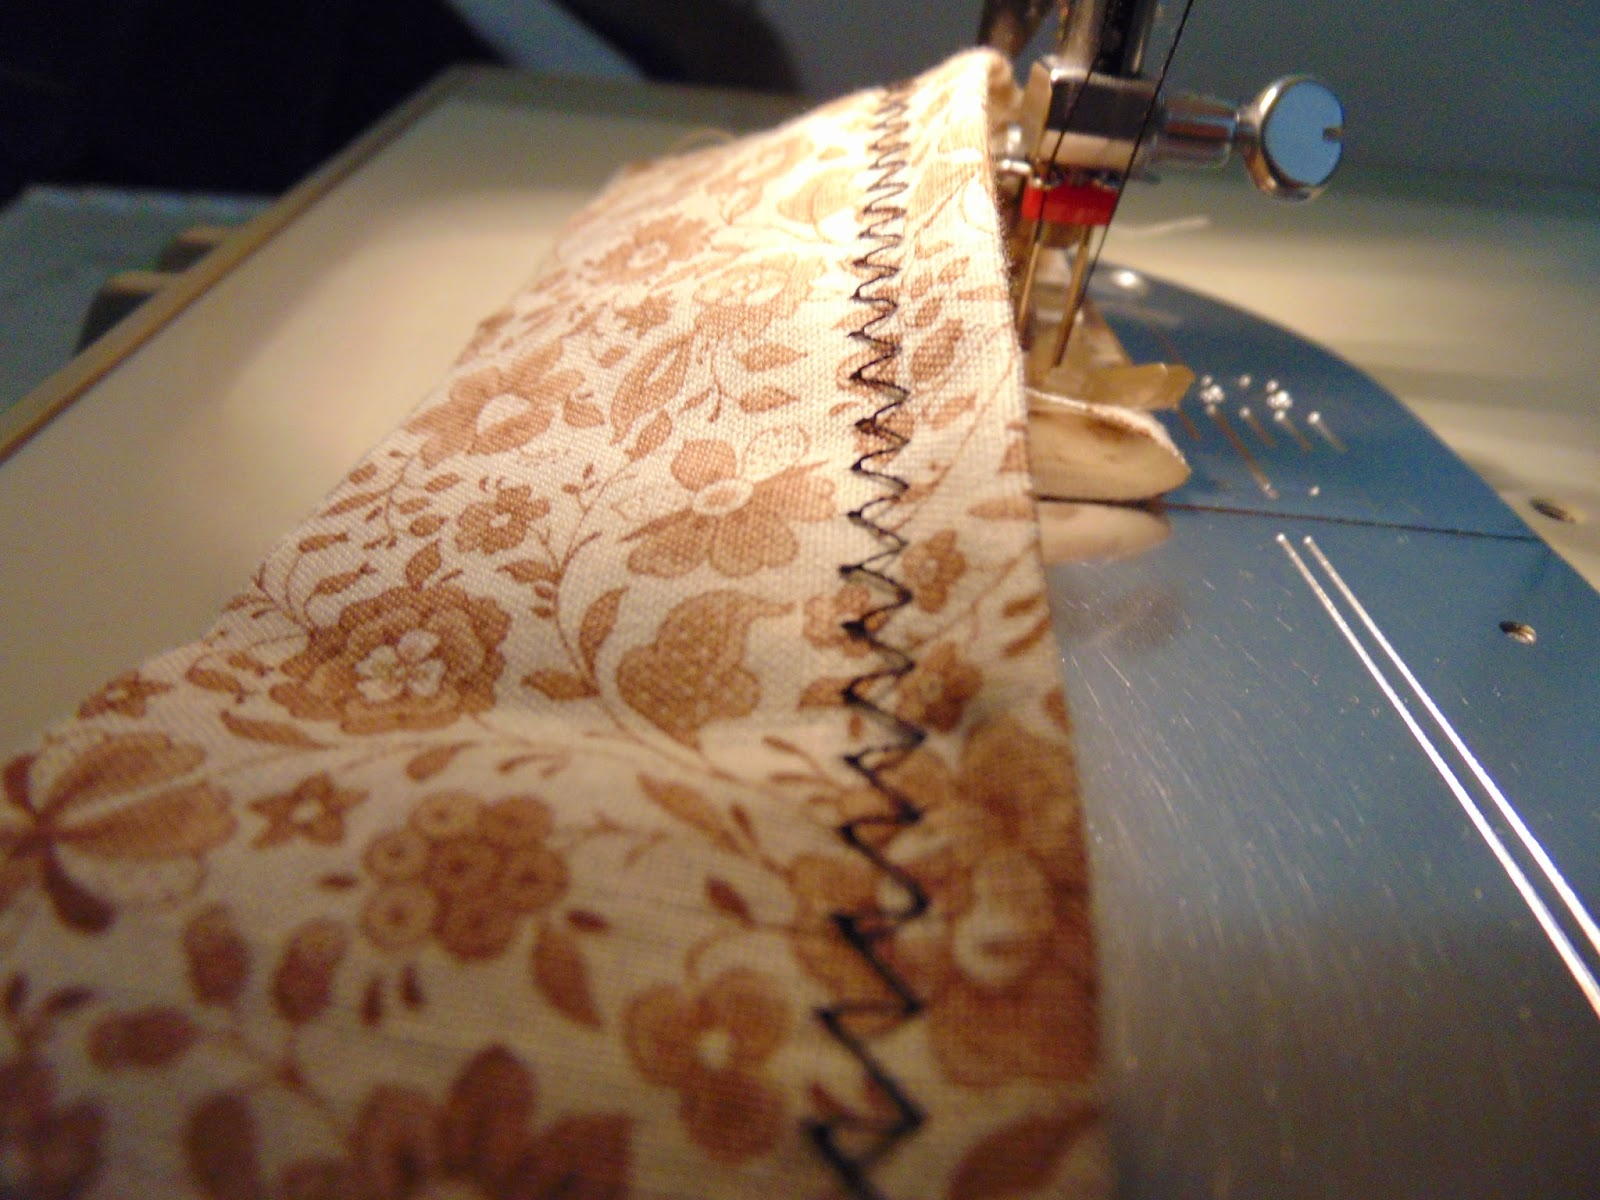 Sample shows backside of double needle sewing